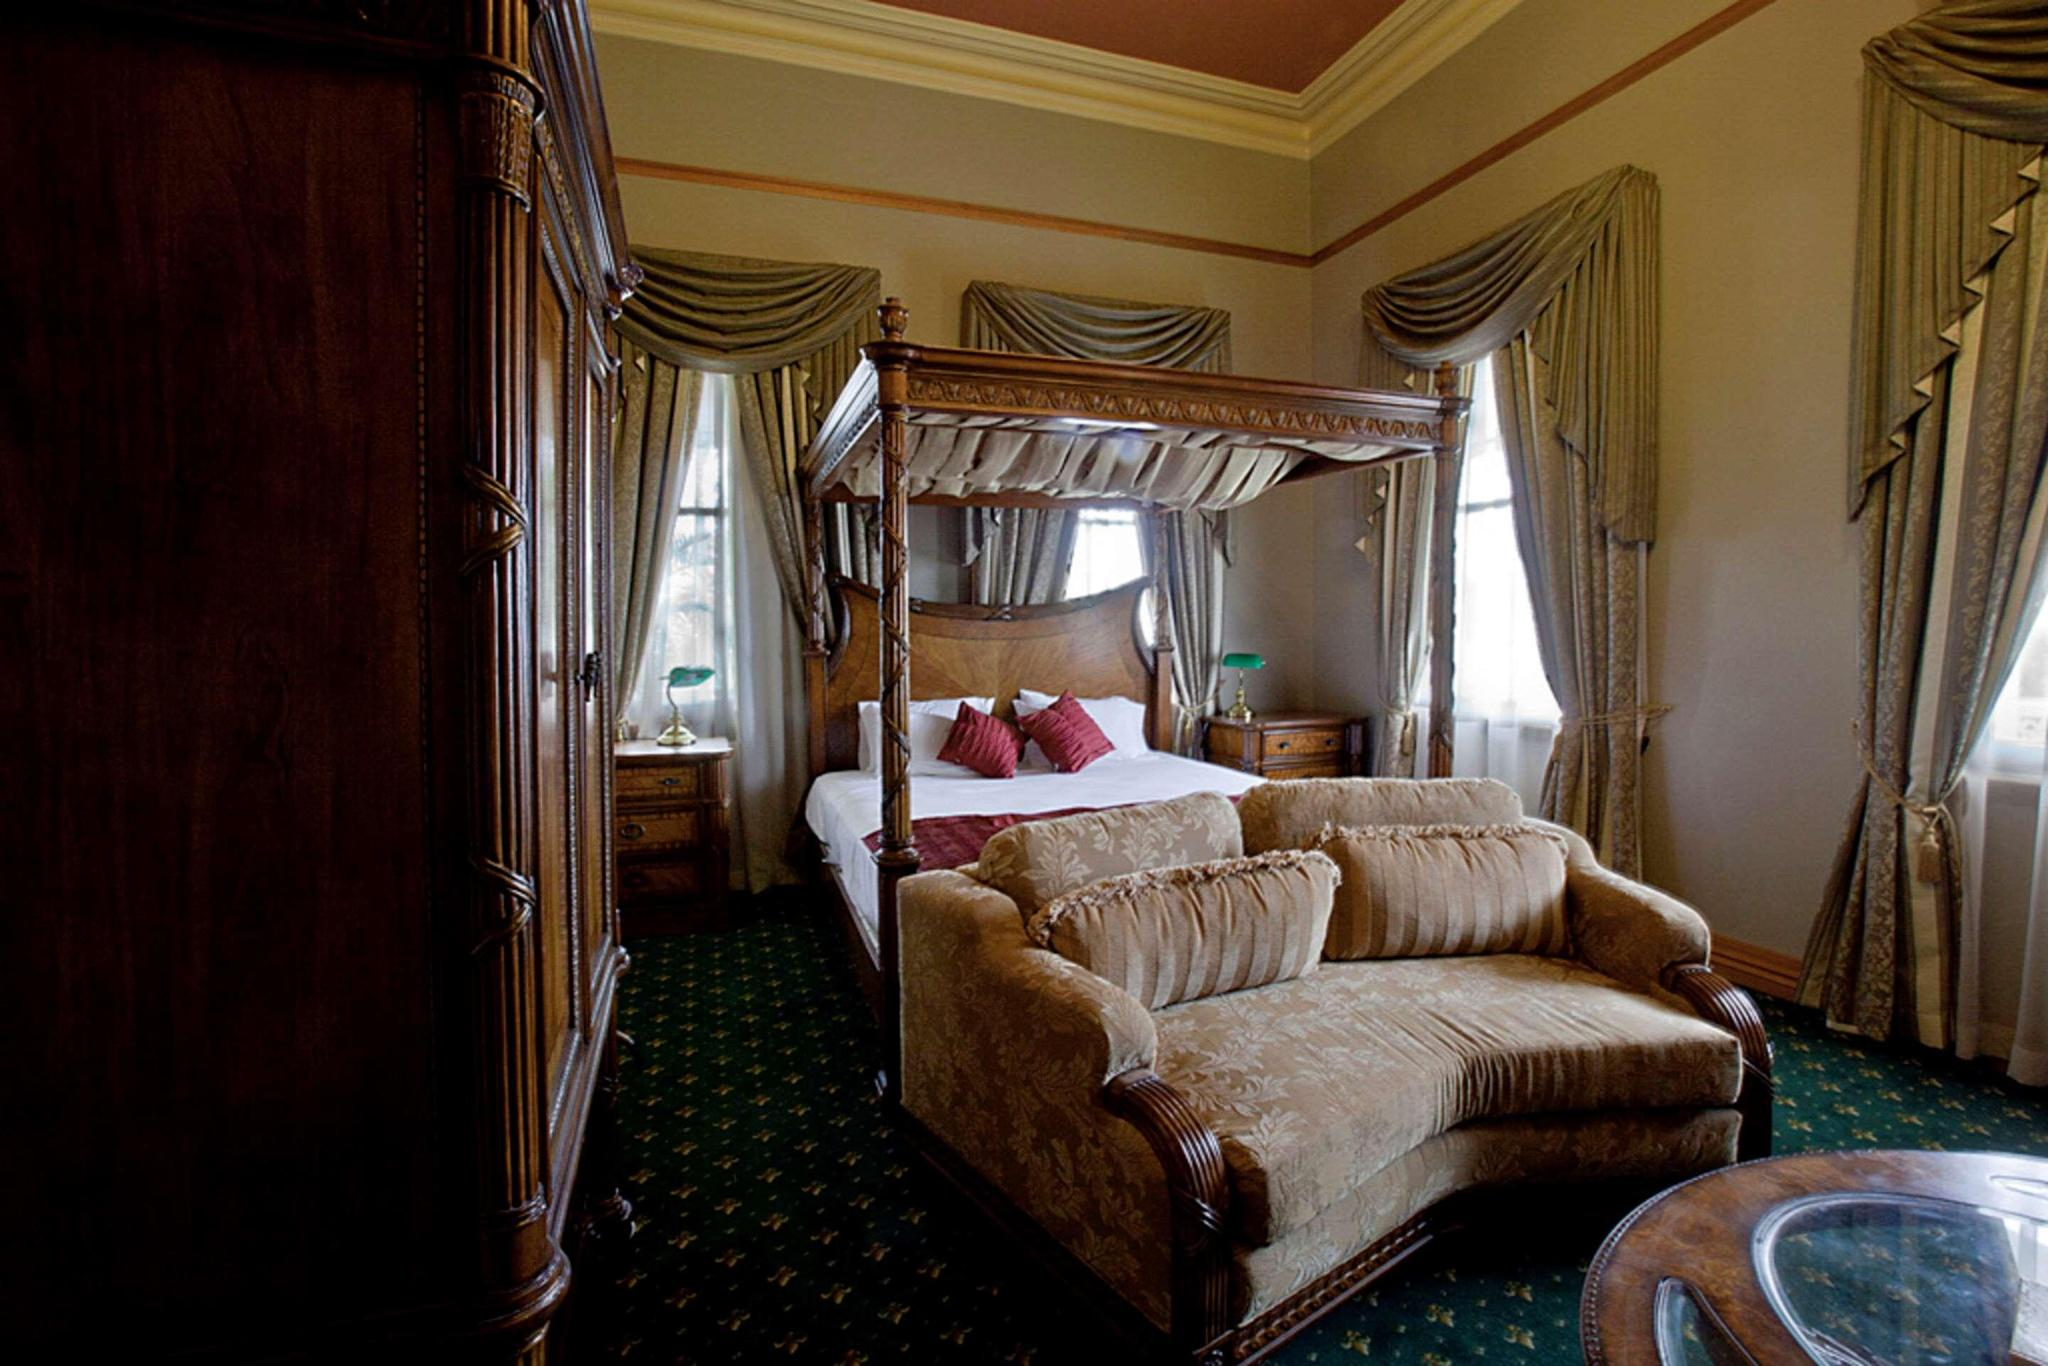 Double king size bed